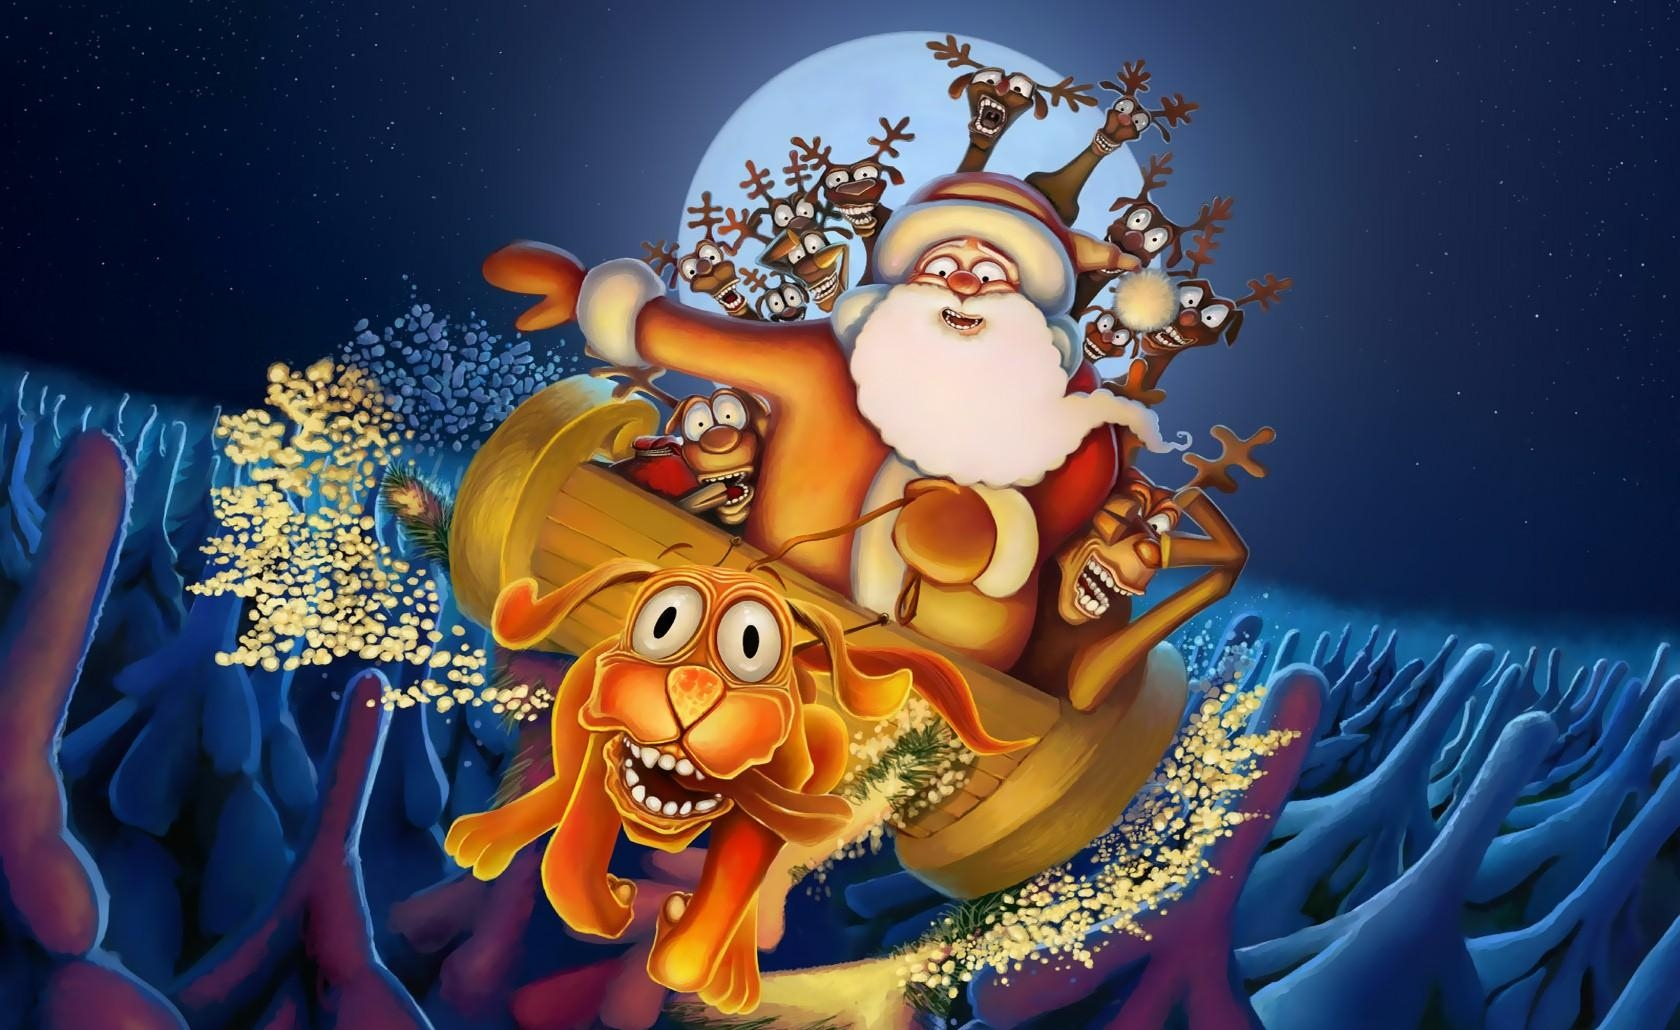 115502 download wallpaper Holidays, Dog, Deers, Santa Claus, Flight, Moon, Night, Christmas, Fir-Trees screensavers and pictures for free